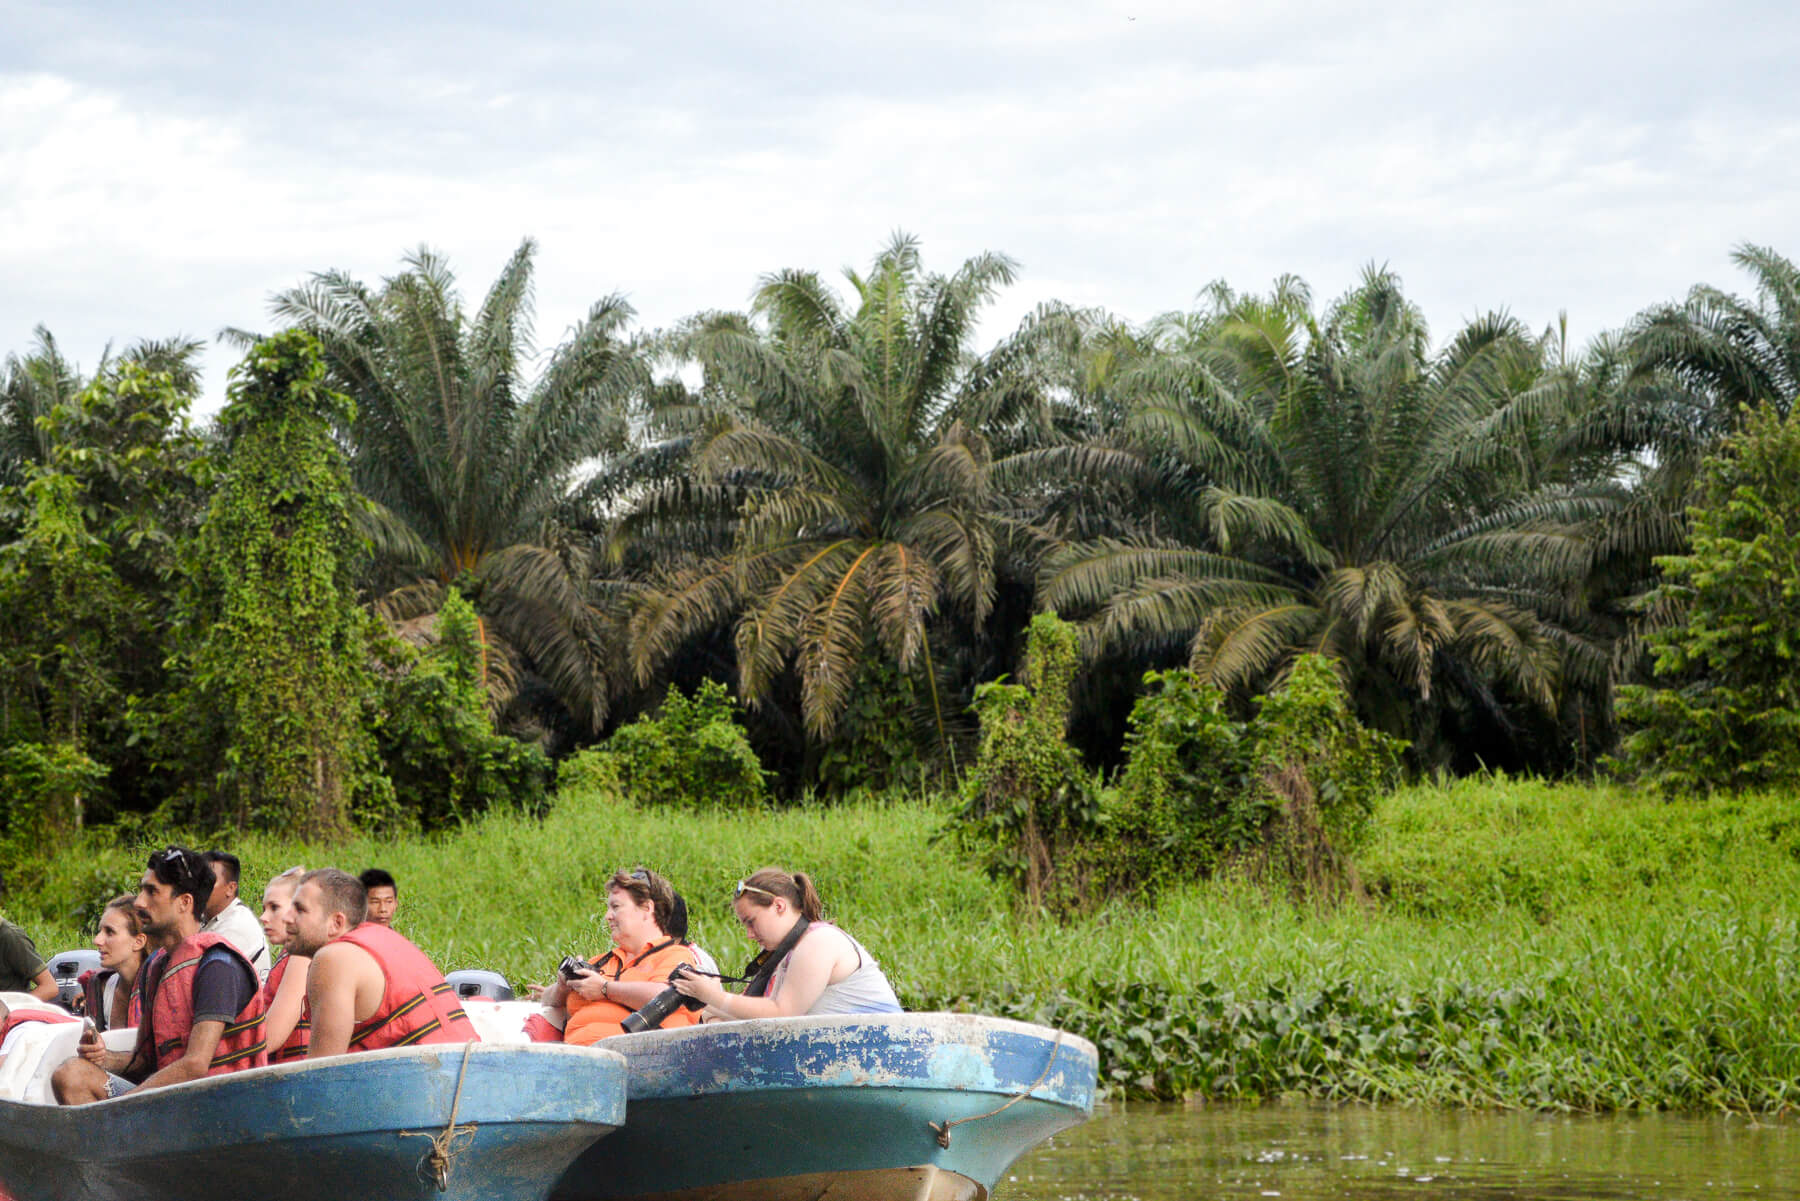 2 boats filled with tourists on Kinabatangan River and Palm Oil Trees in the background